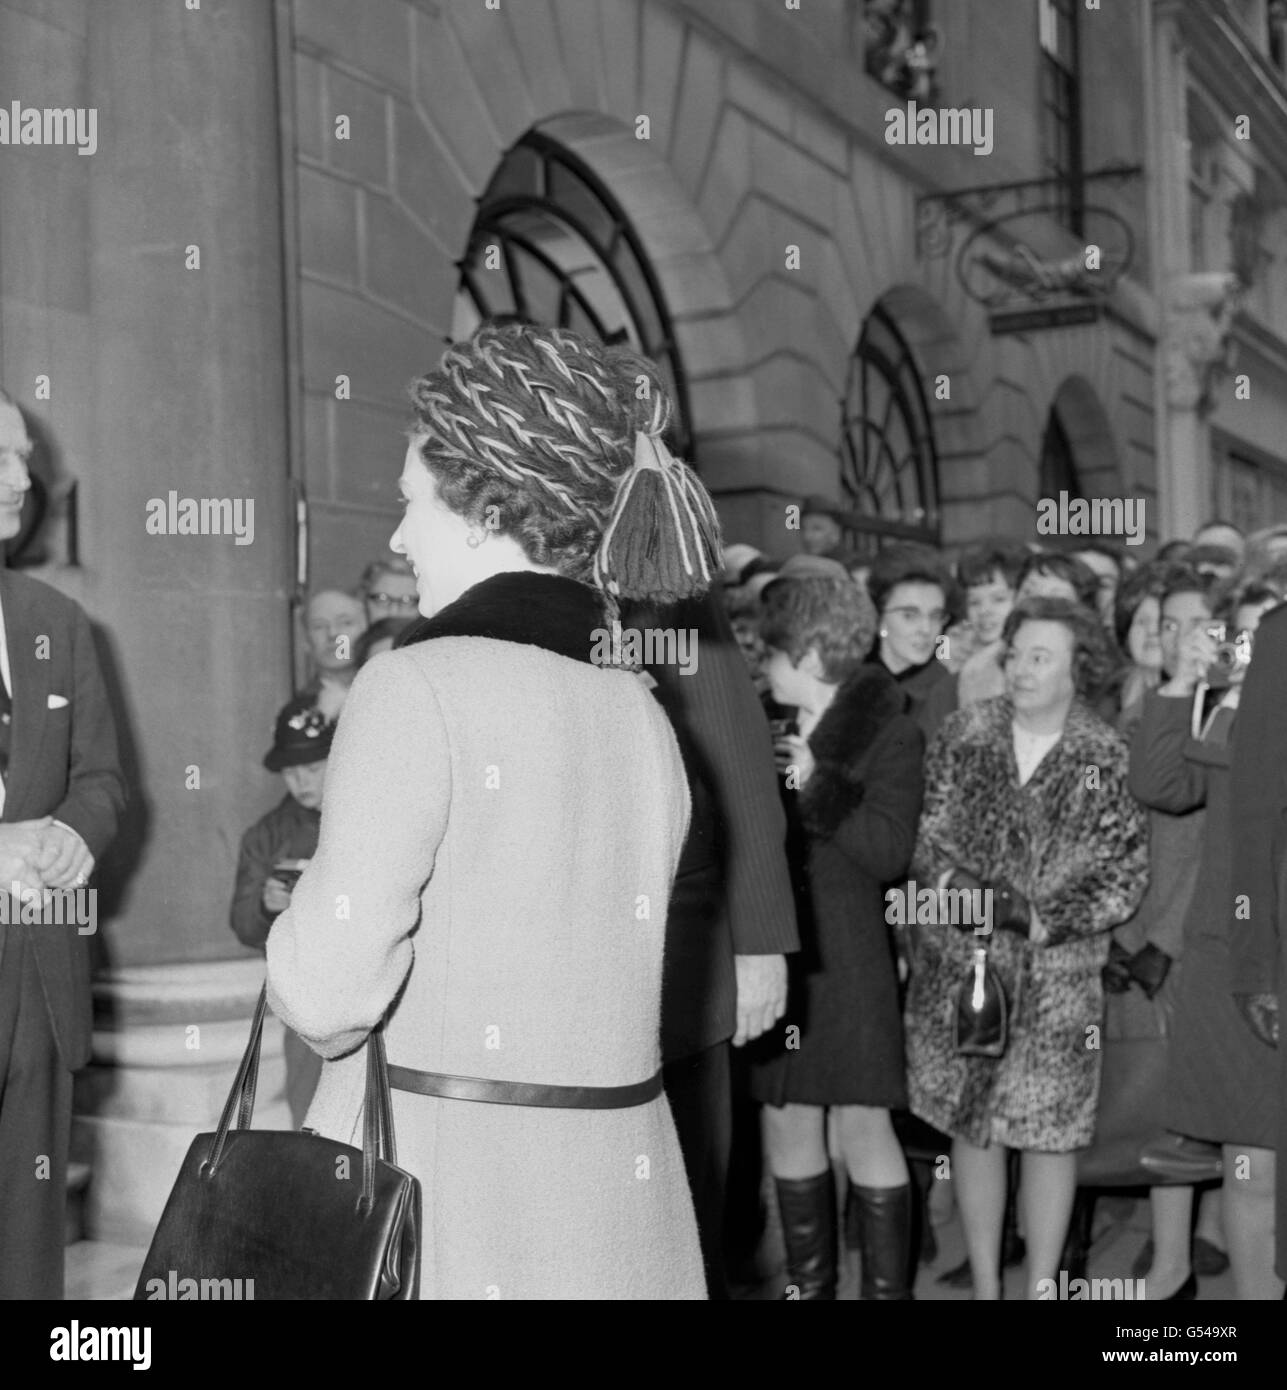 Royalty - Confederation of British Industry Reception - London - Stock Image